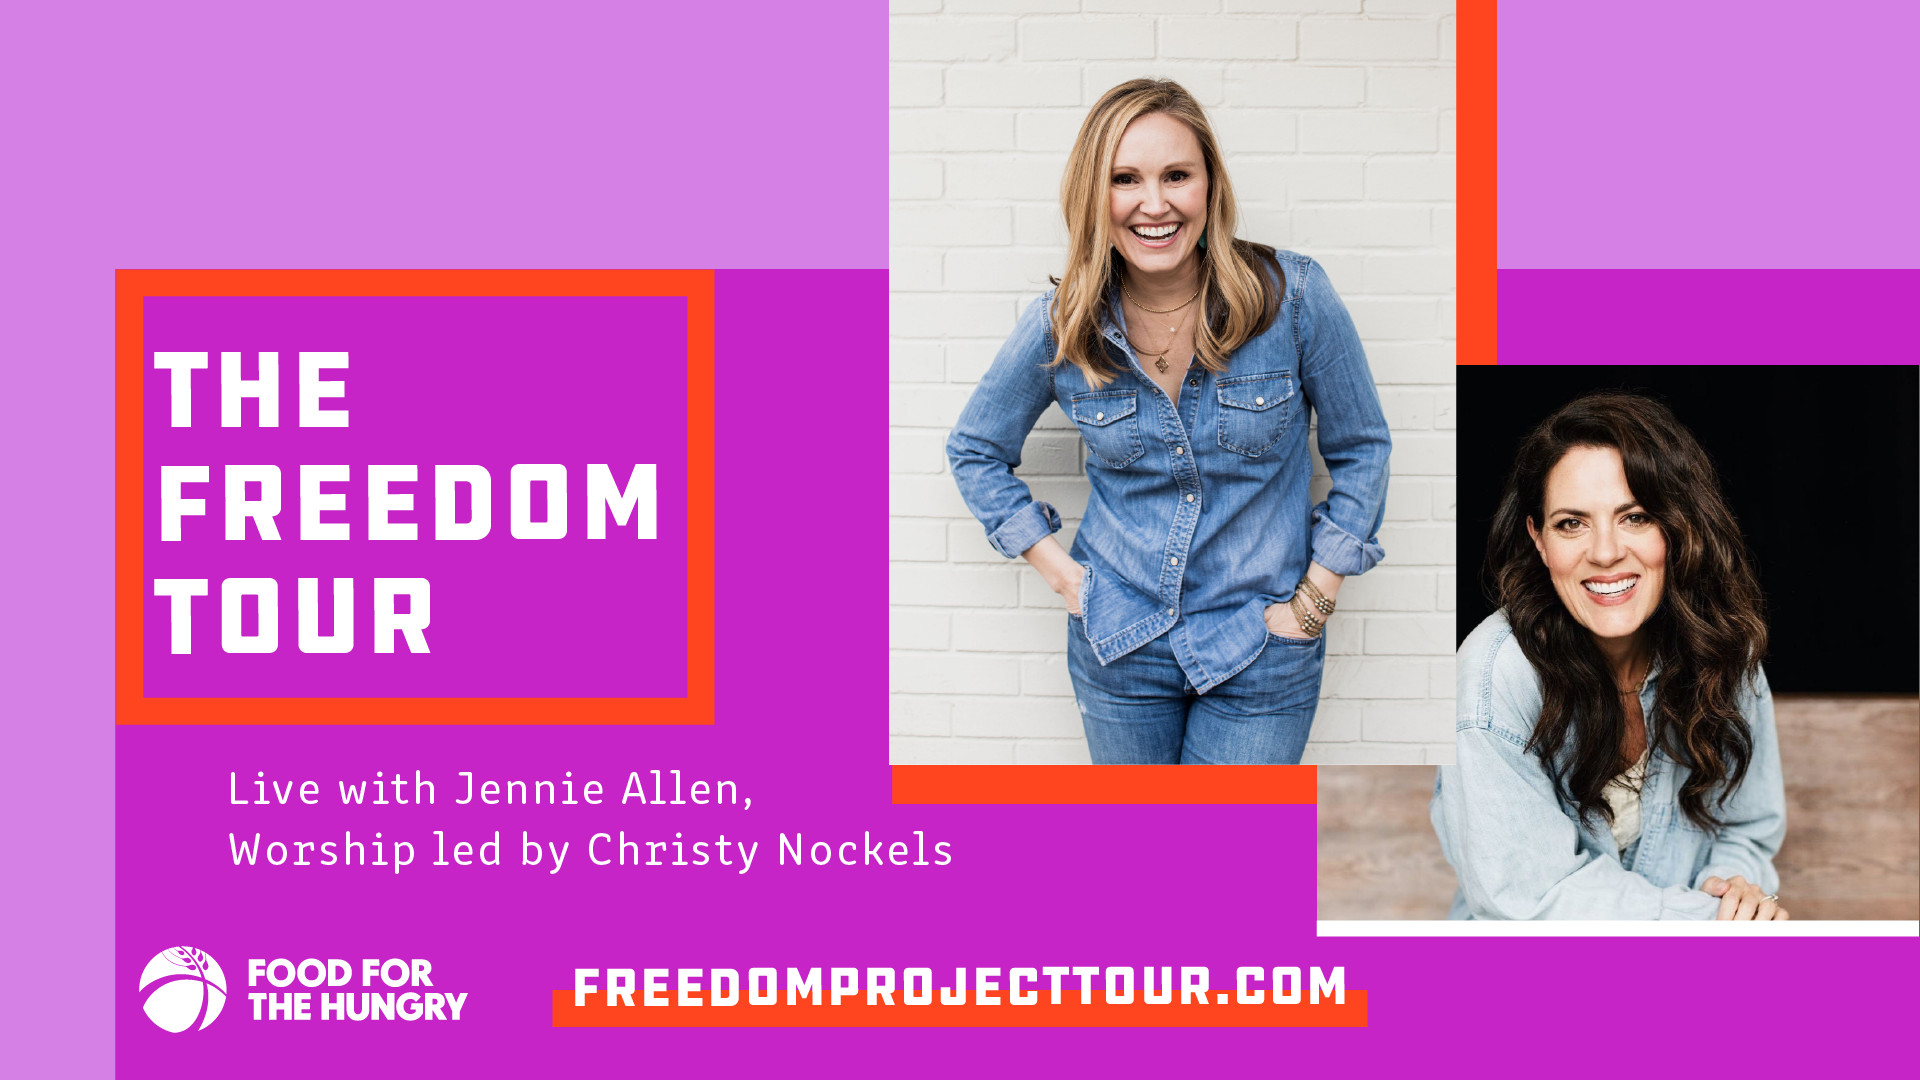 Freedom Tour with Jennie Allen & Christy Nockels